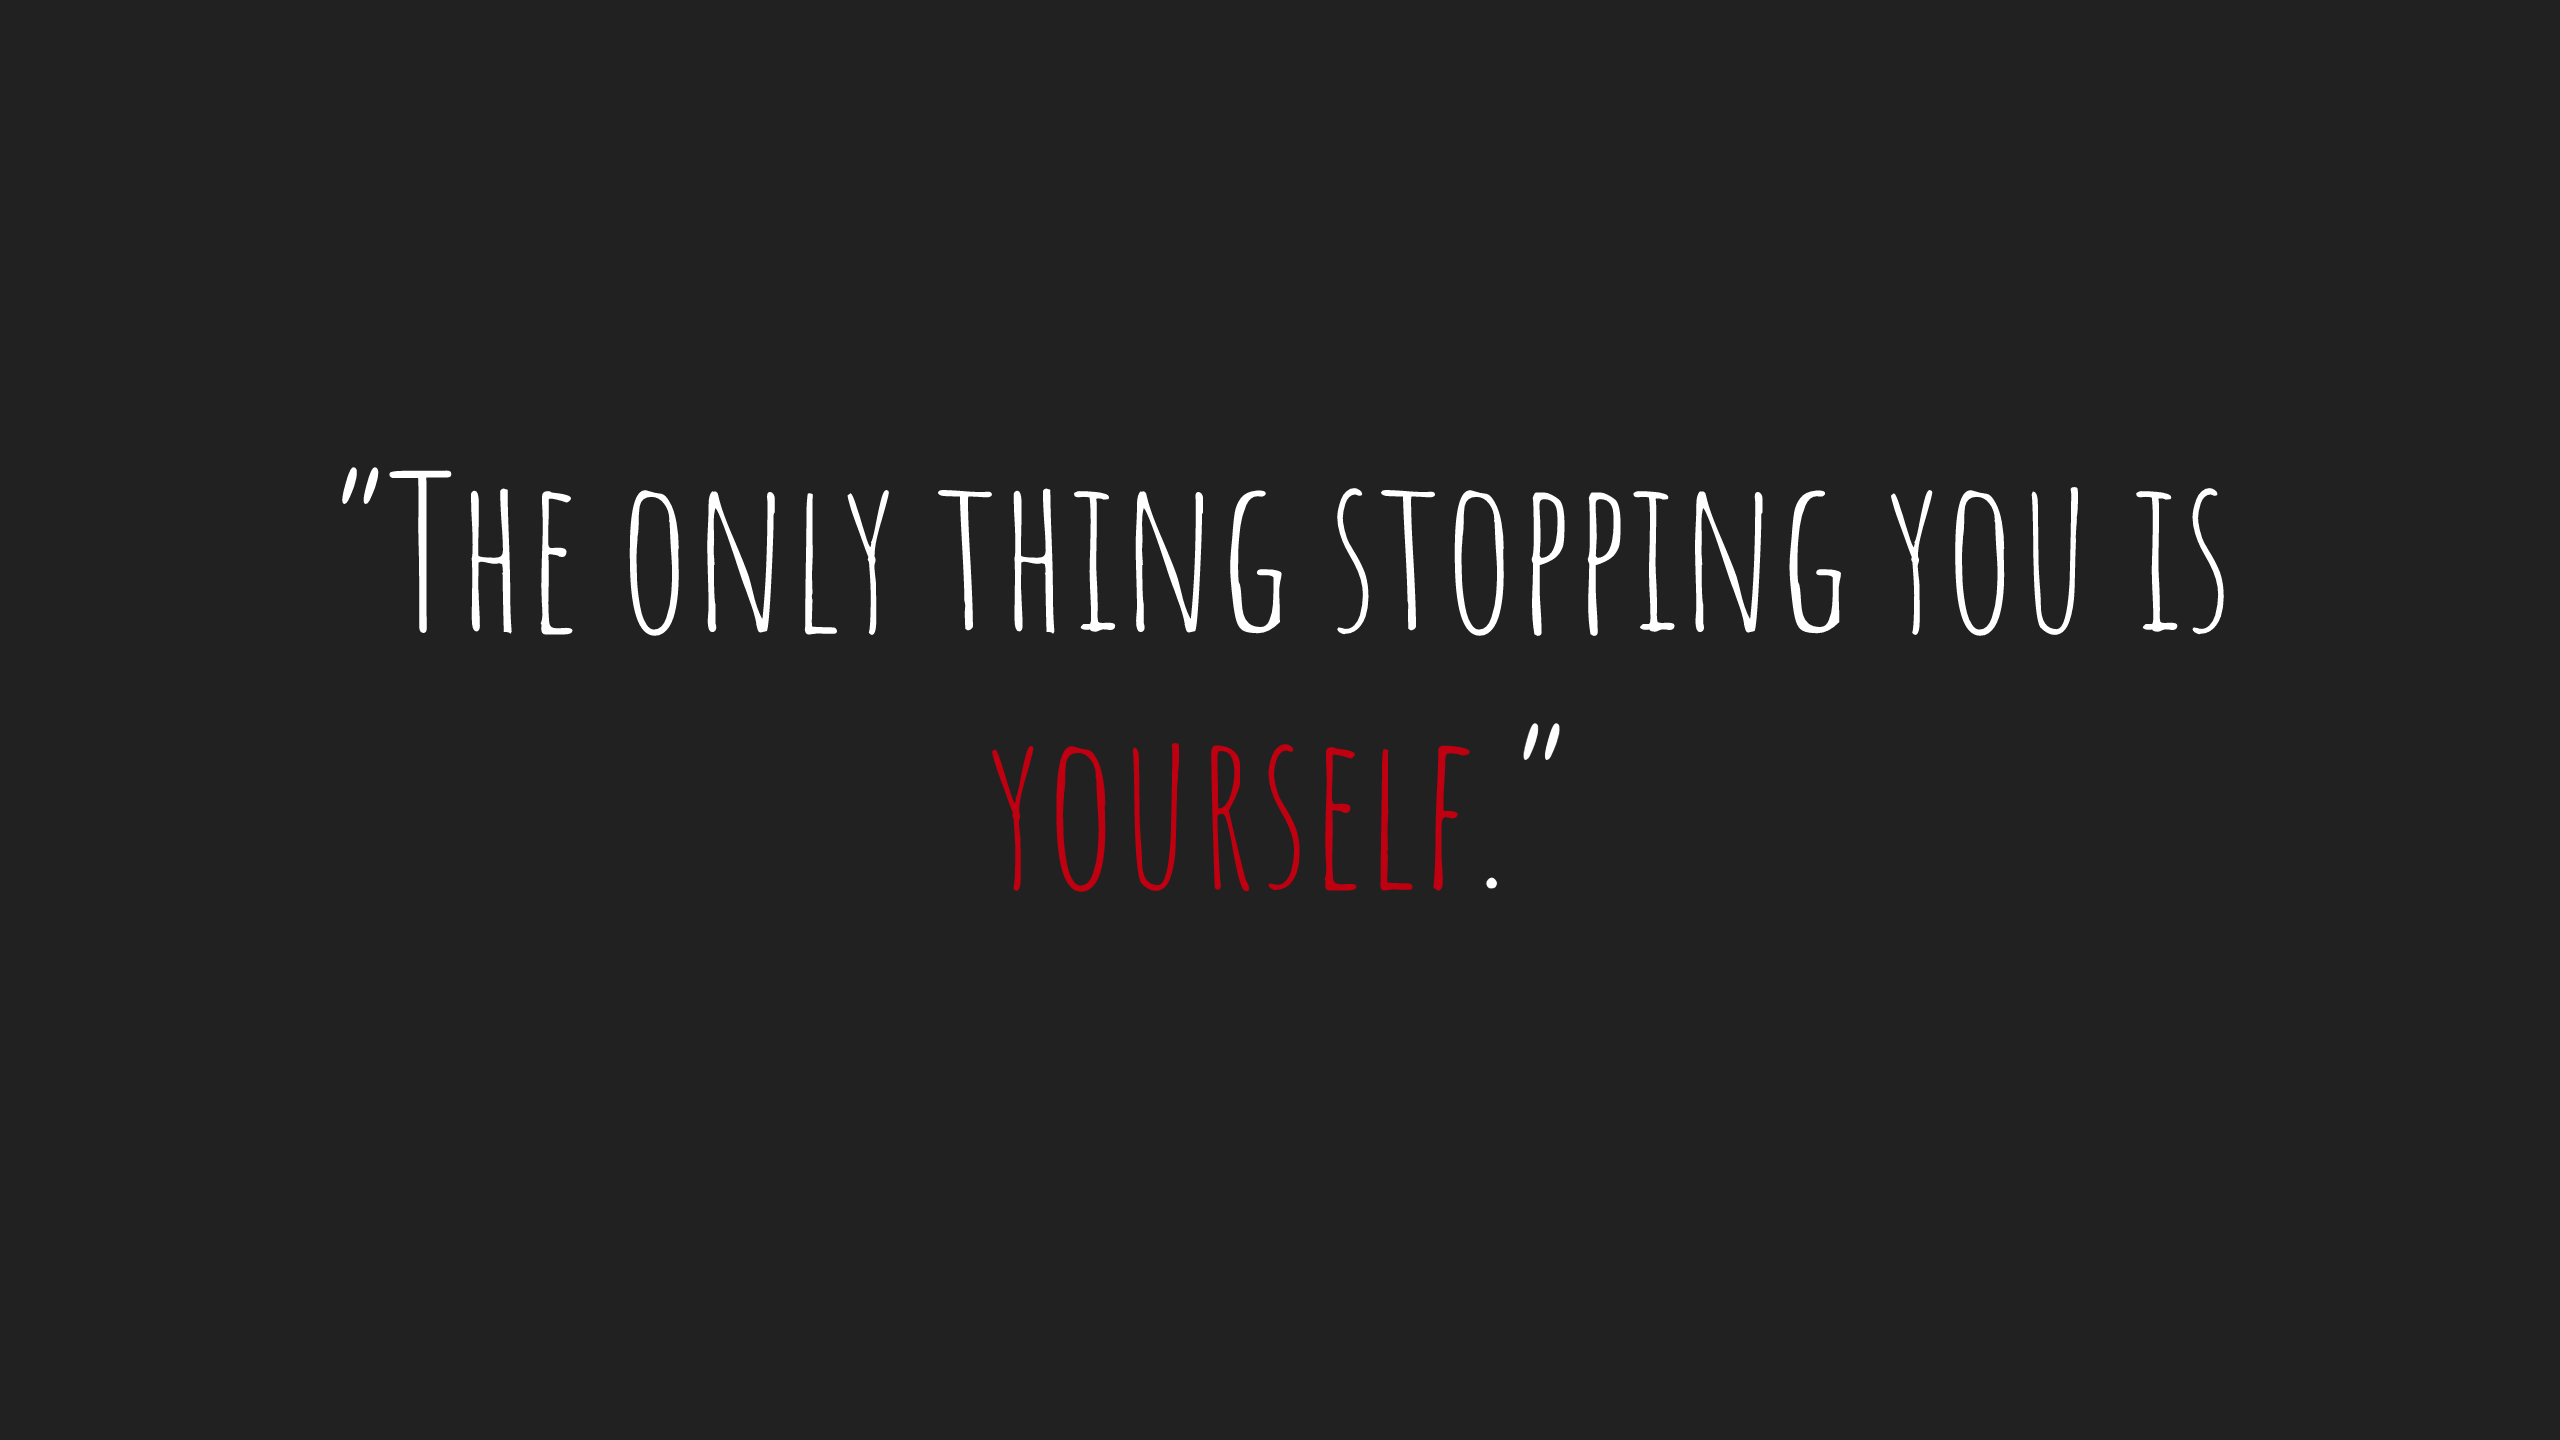 The only thing stopping you is yourself.